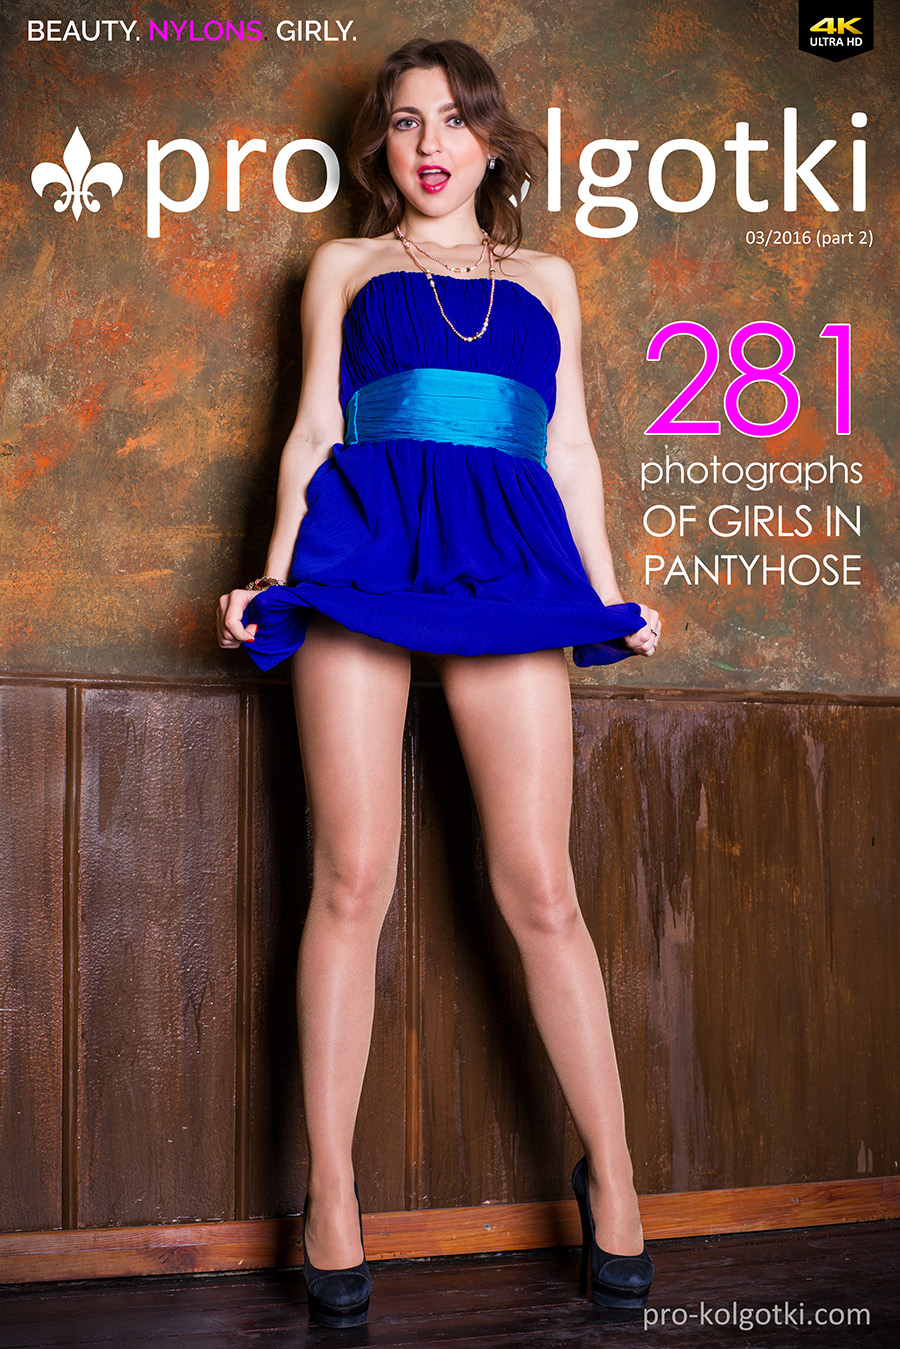 photo of girls in pantyhose with upskirts in Wolford- cover of pro-kolgotki March (part 2) 2016